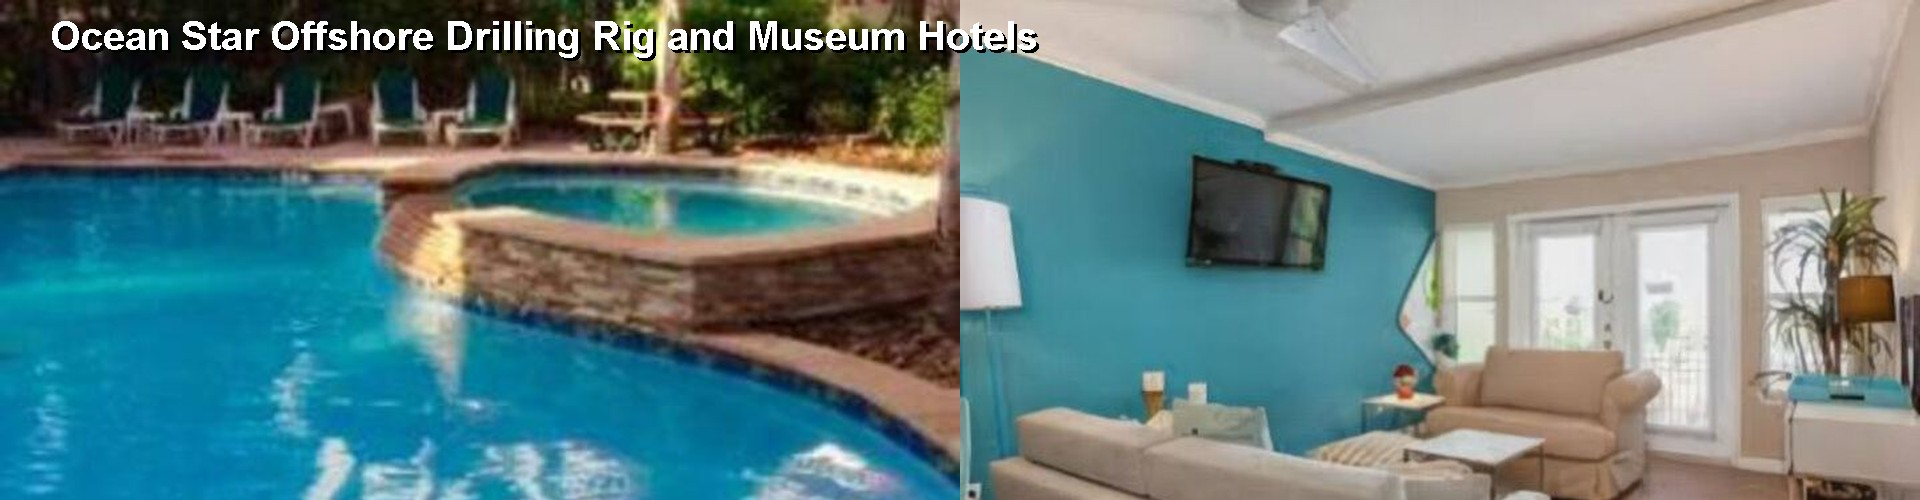 5 Best Hotels near Ocean Star Offshore Drilling Rig and Museum